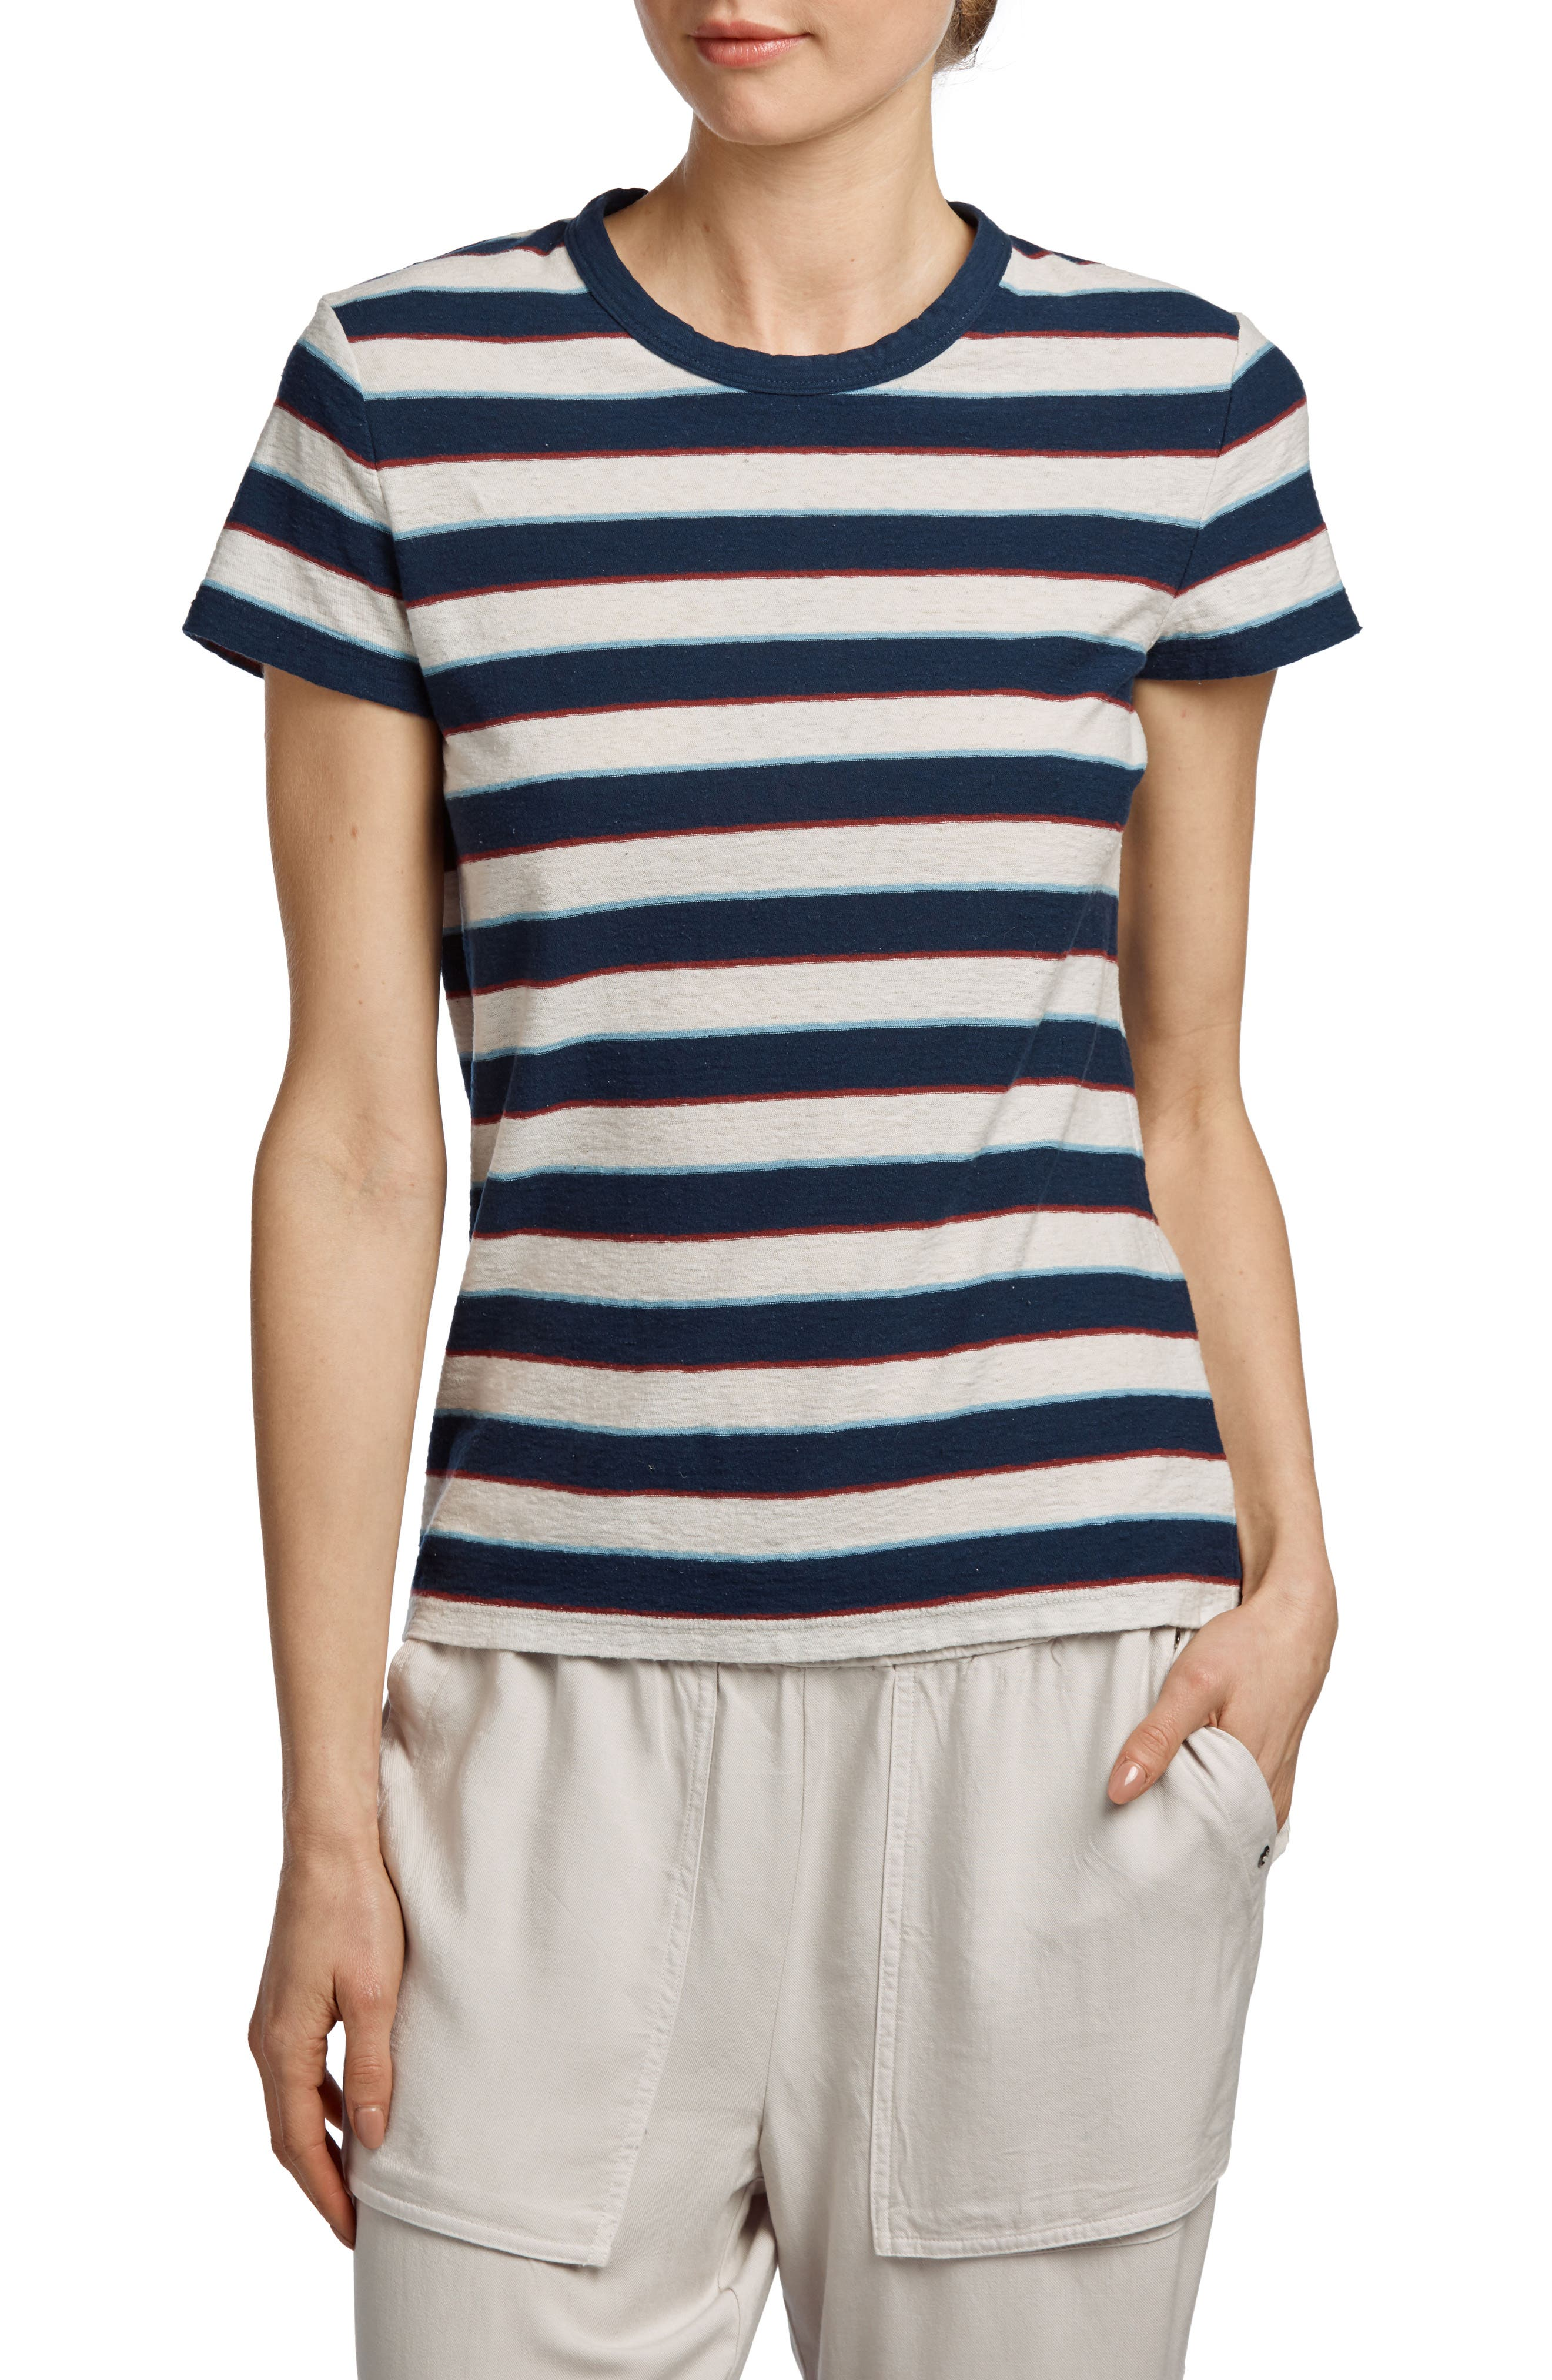 Shrunken Retro Tee,                             Main thumbnail 1, color,                             Navy Stripe